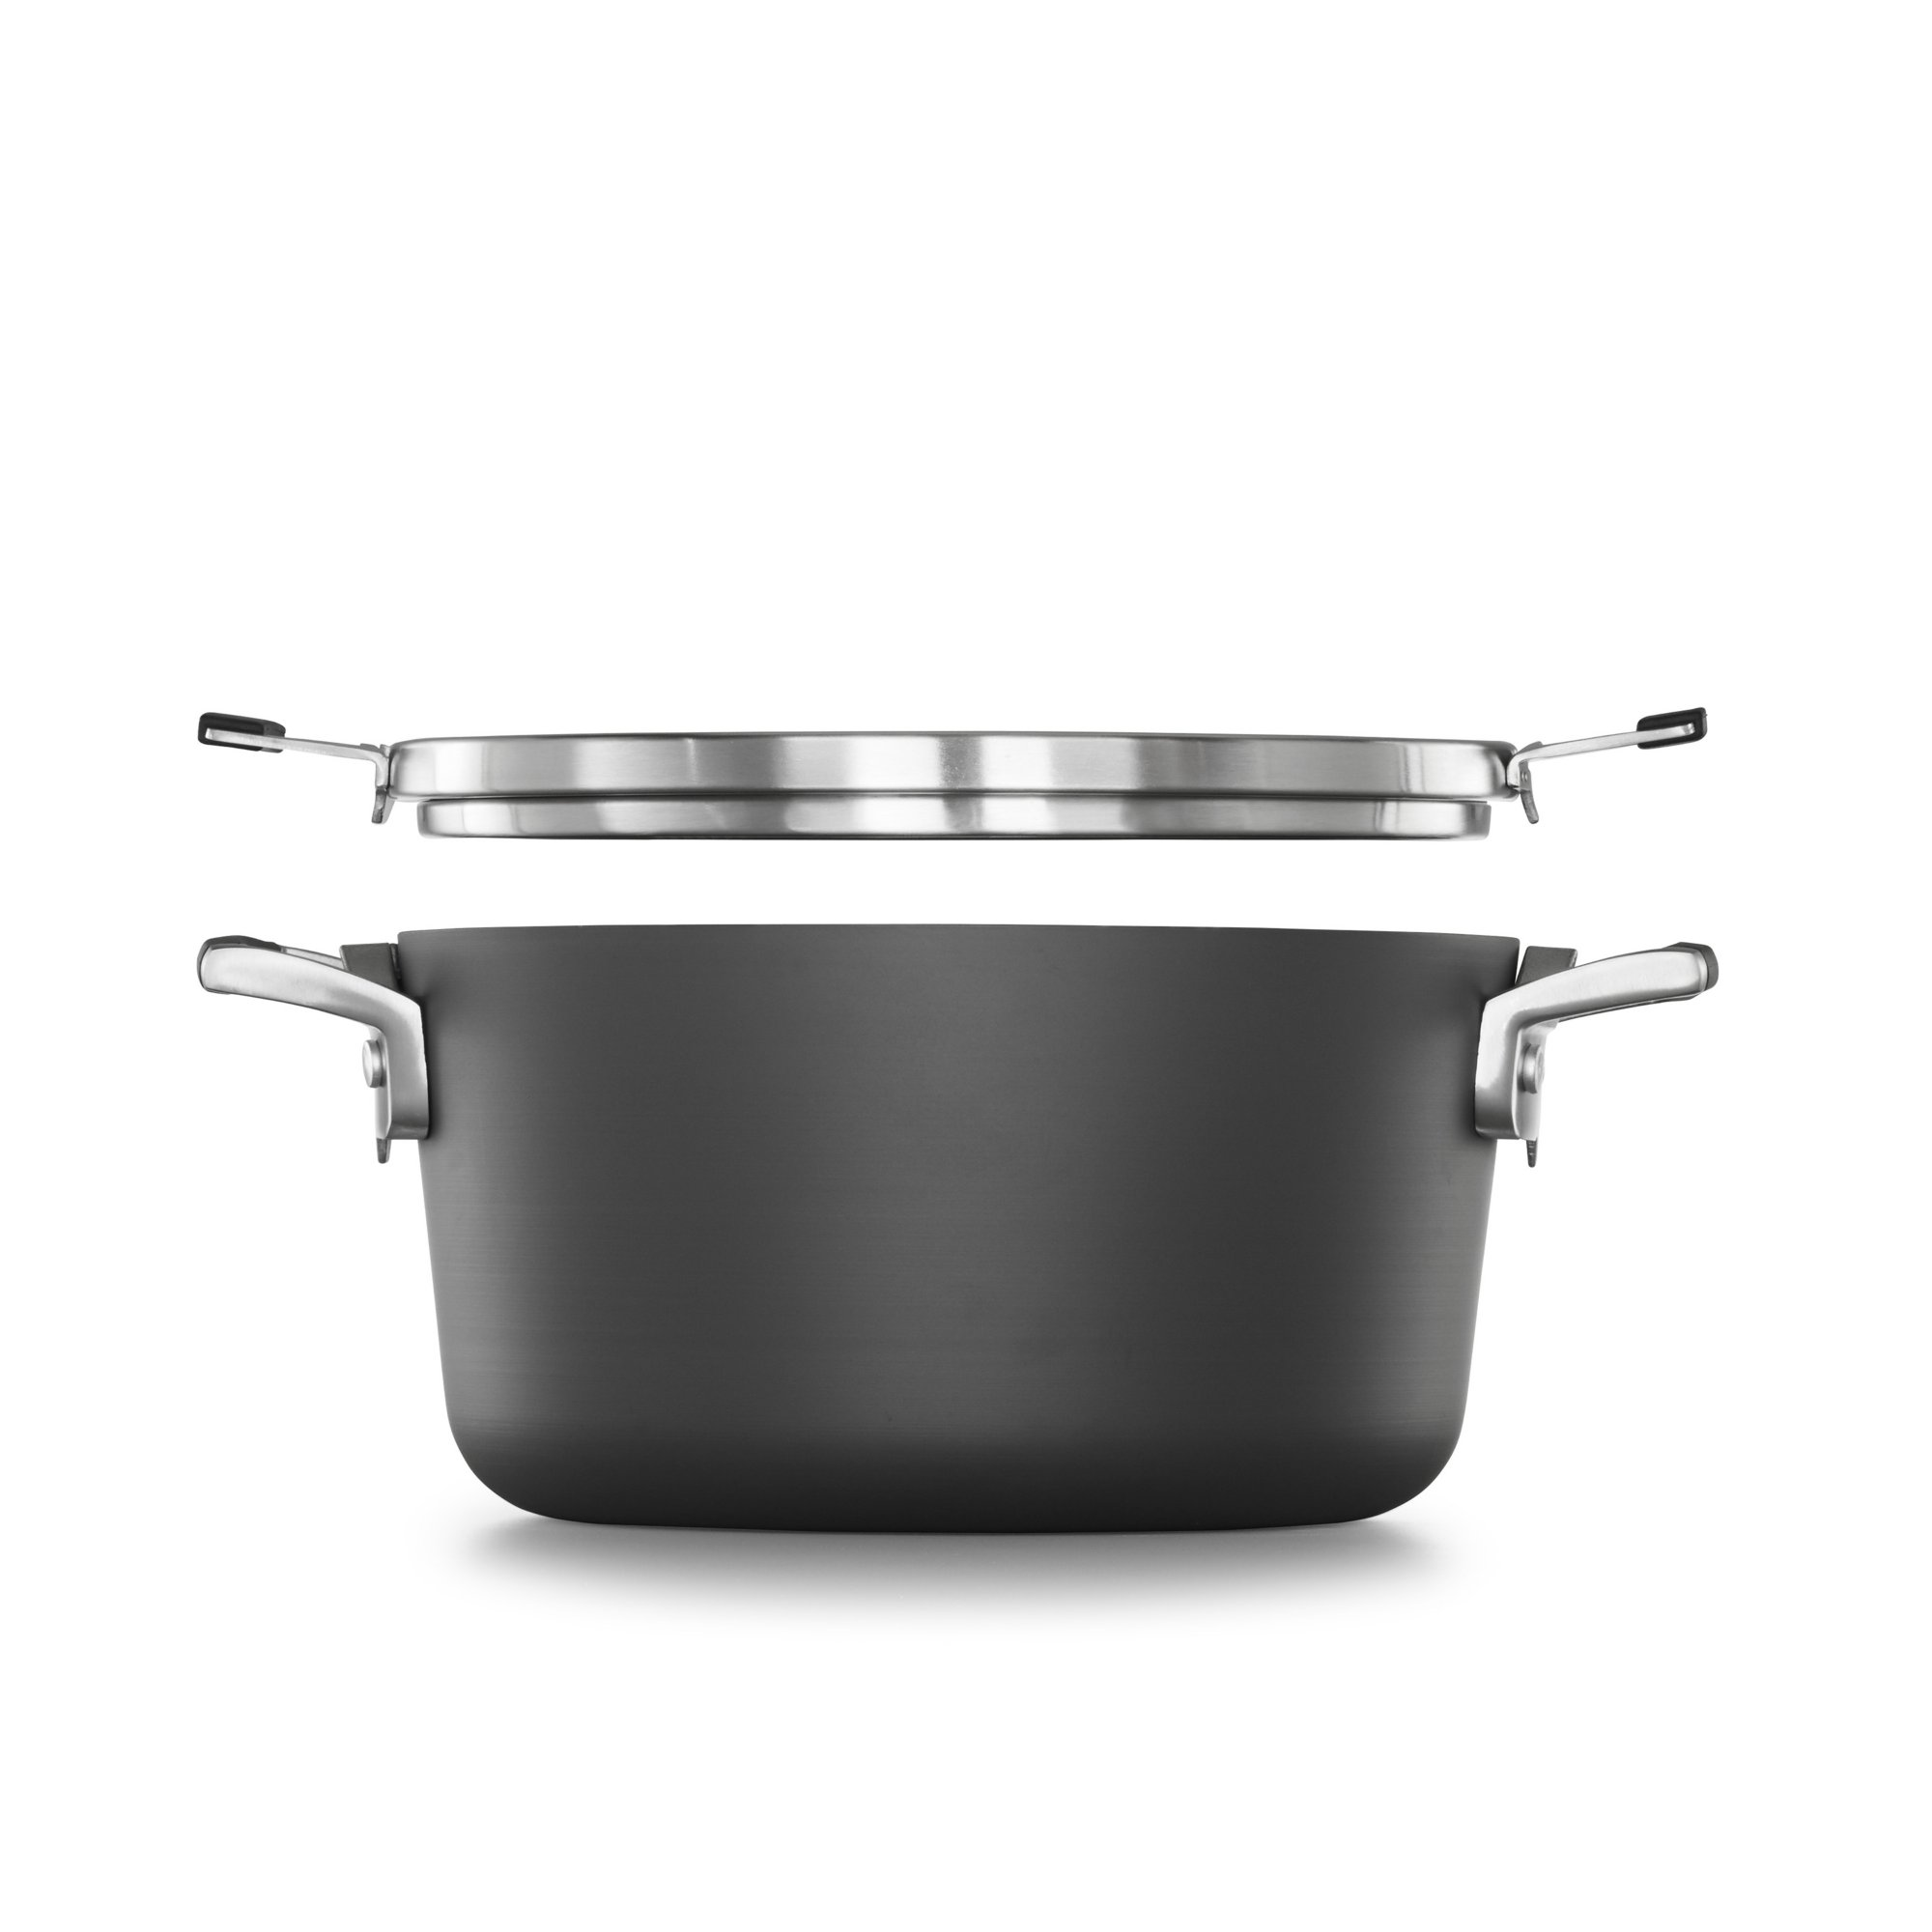 Select by Calphalon Space Saving Hard-Anodized Nonstick 6-Quart Stock Pot with Cover